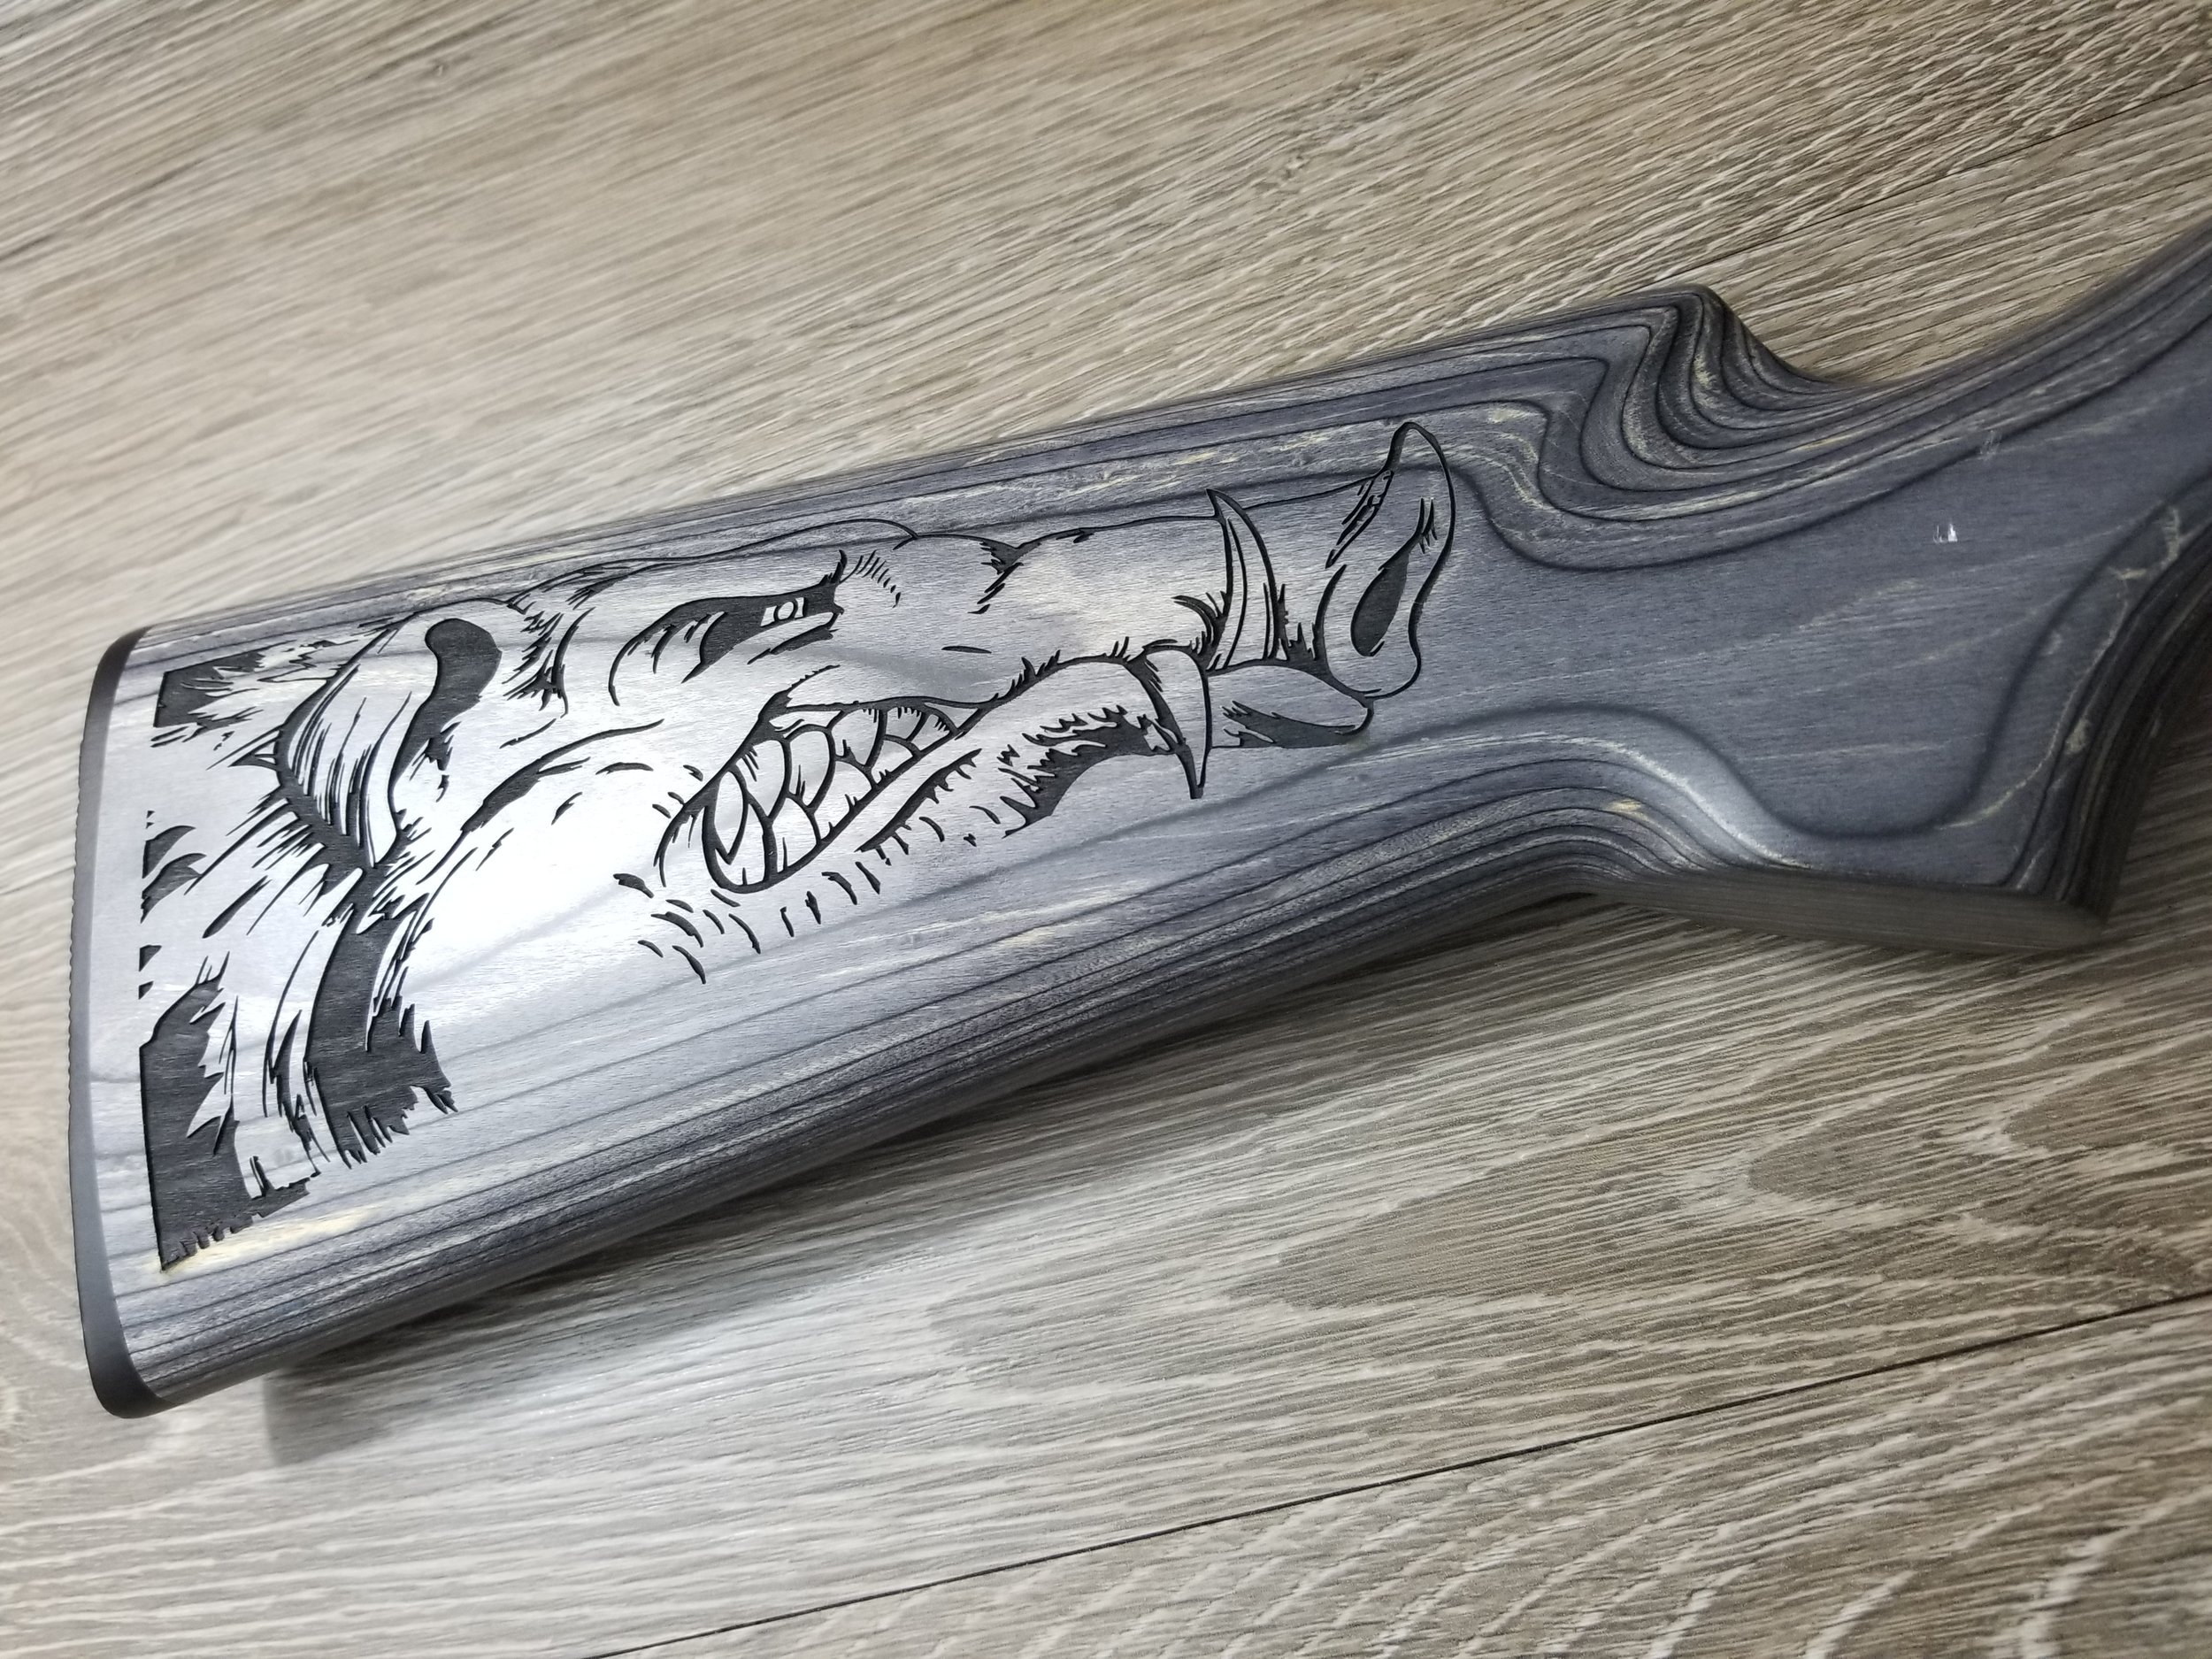 Personalized Rifle Stock - Engraved Rifle Stock - Personalized Firearms - Firearm Engraving - Firearm Engraving Projects - Engrave It houston